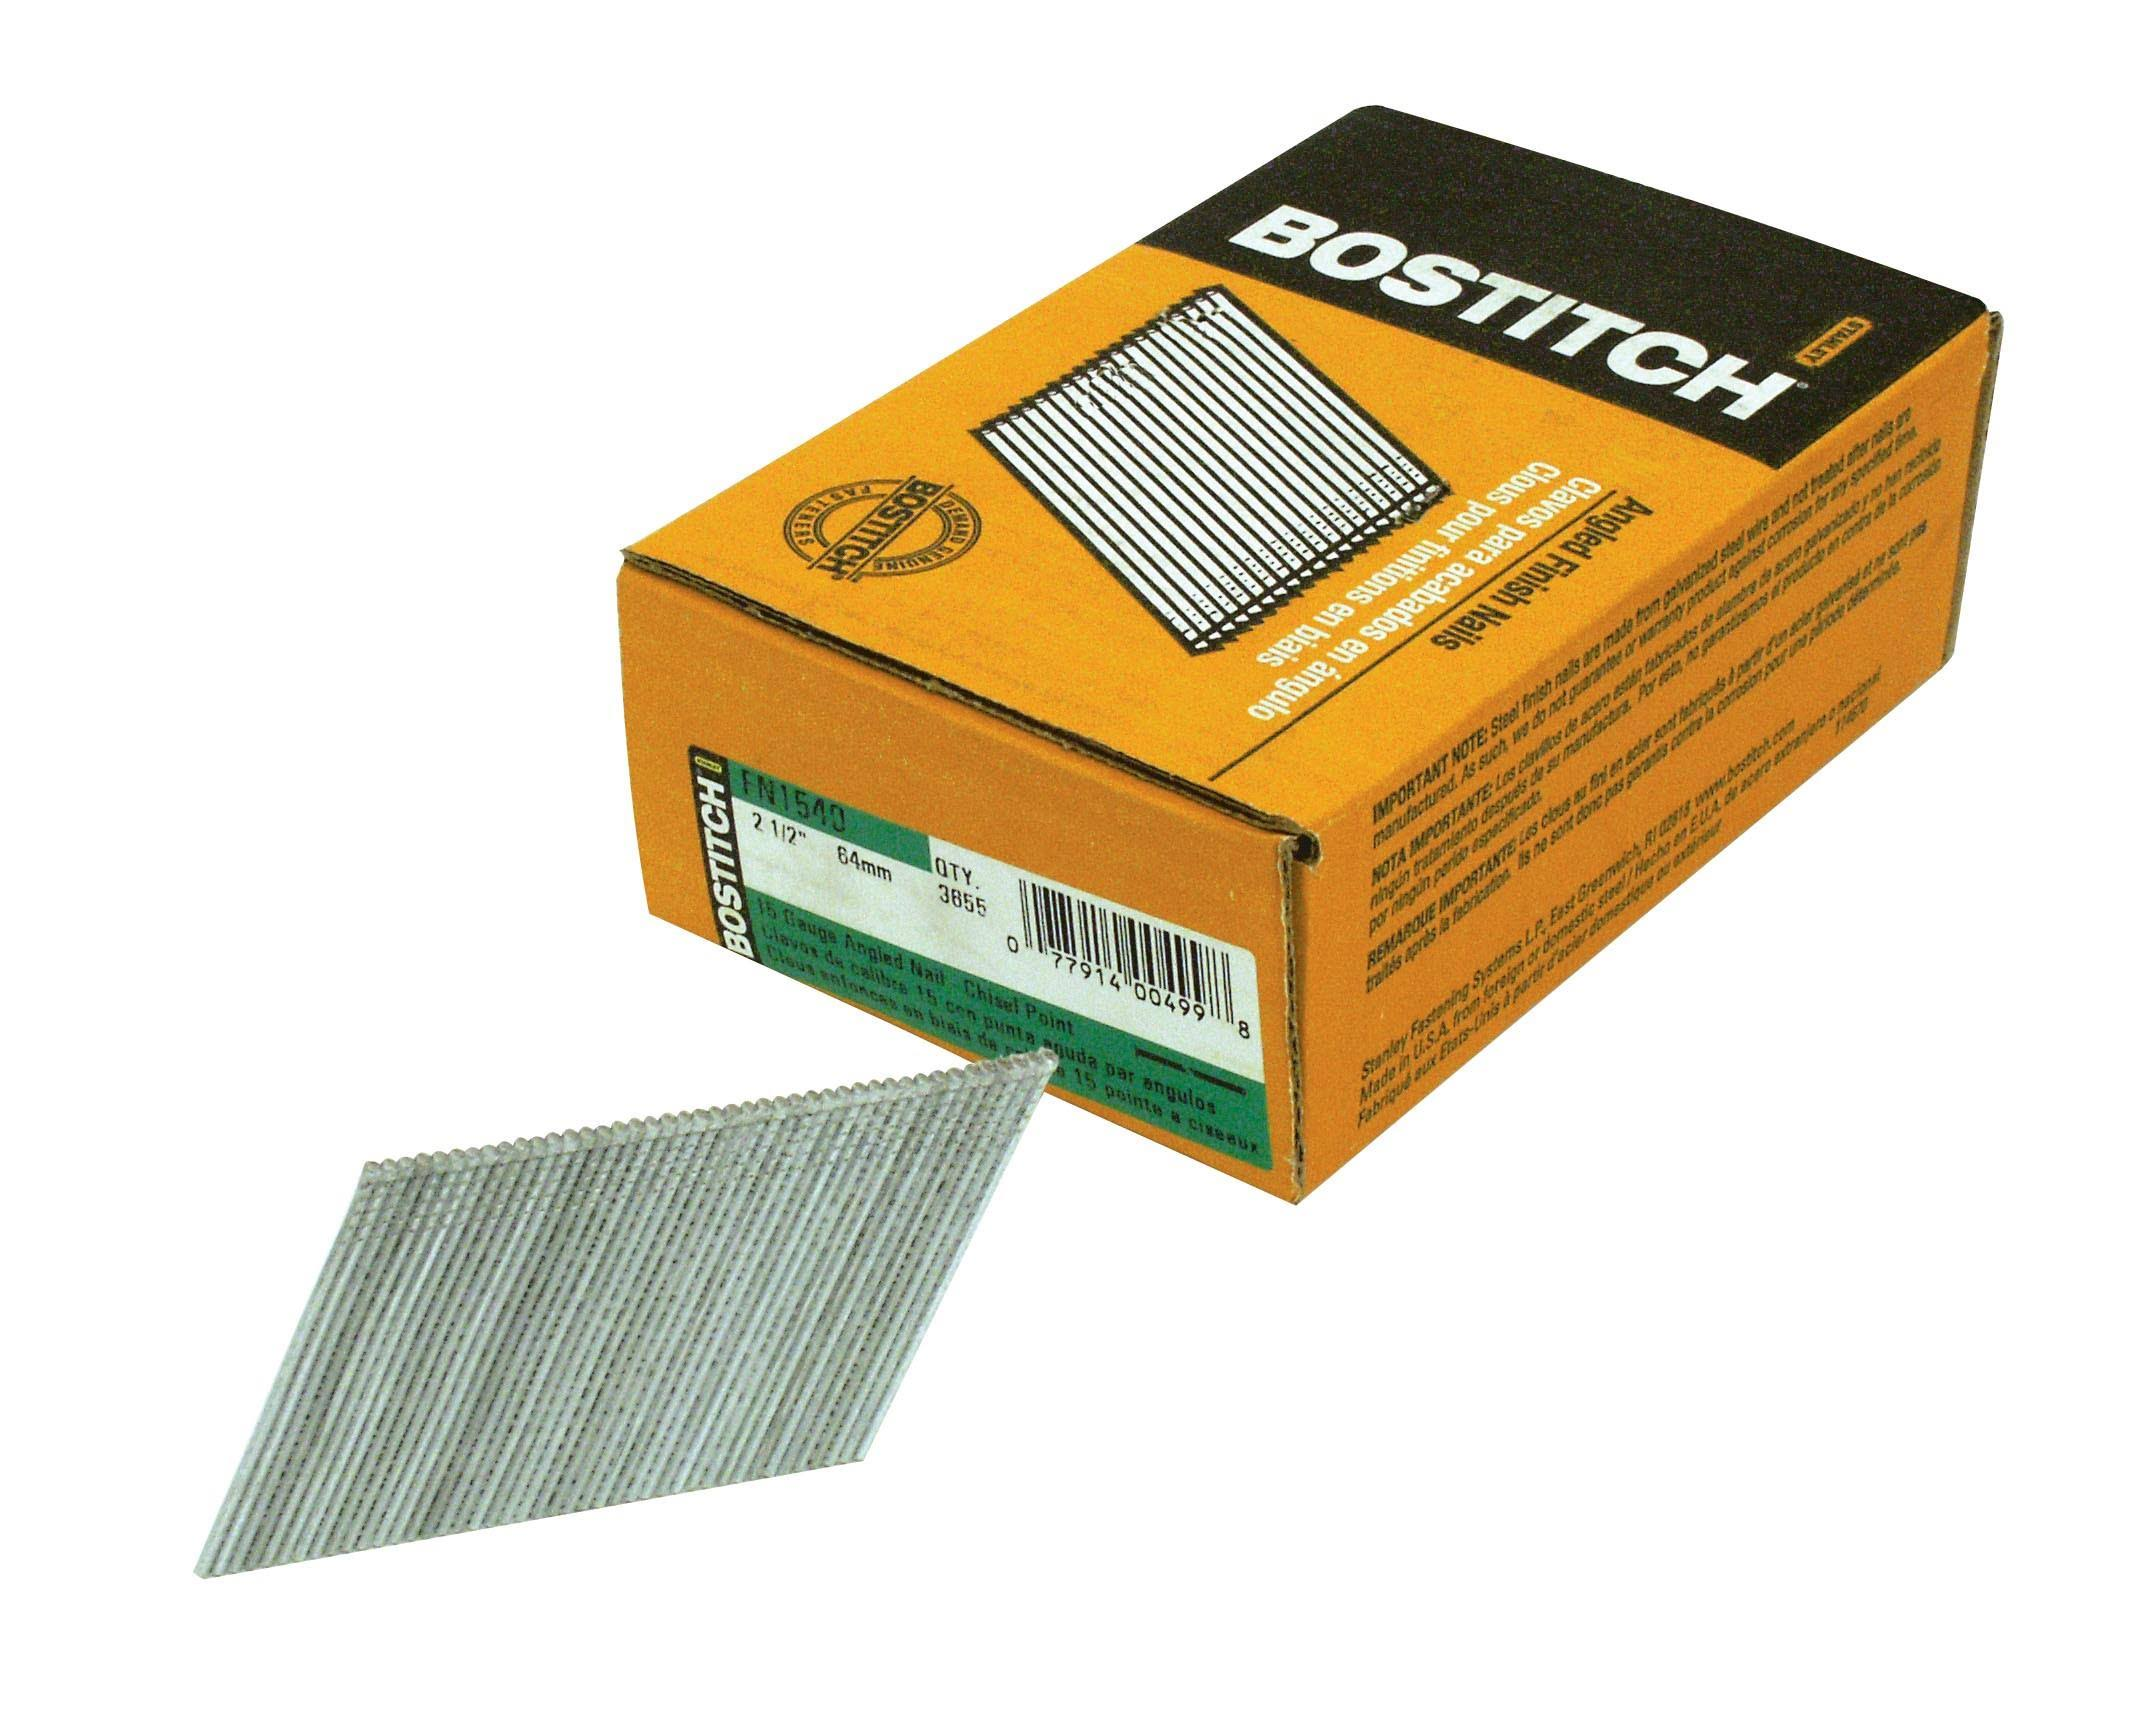 "Bostitch Fn1540 Angled Finish Nail - 2-1/2"" x 15 Gauge x 33-35 Degrees, x3655"